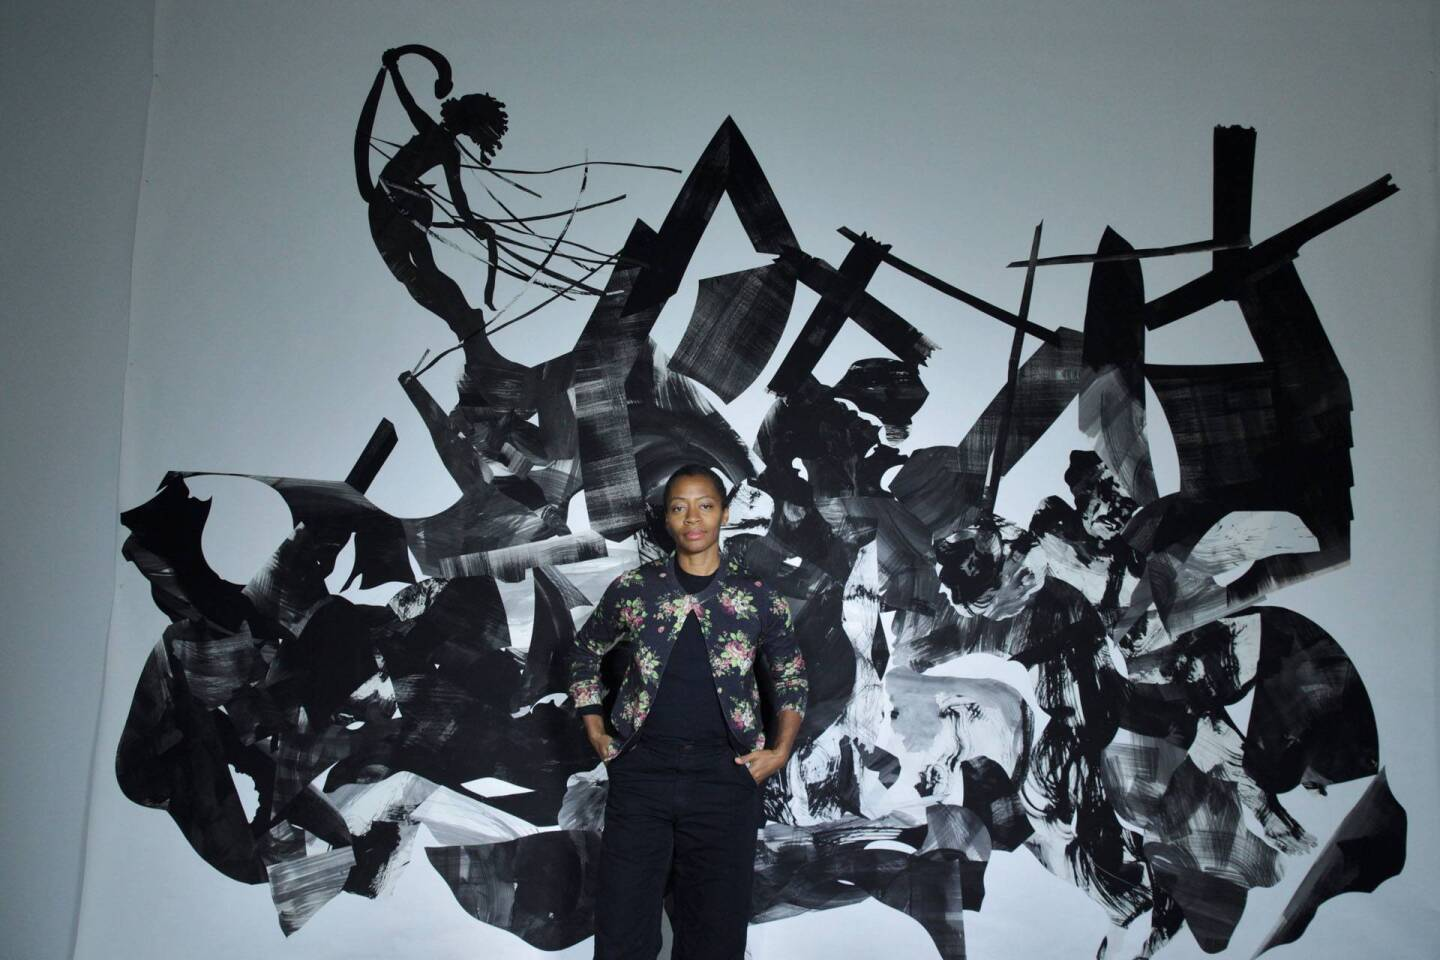 Artist Kara Walker stands in front of a large, abstract black and white painting